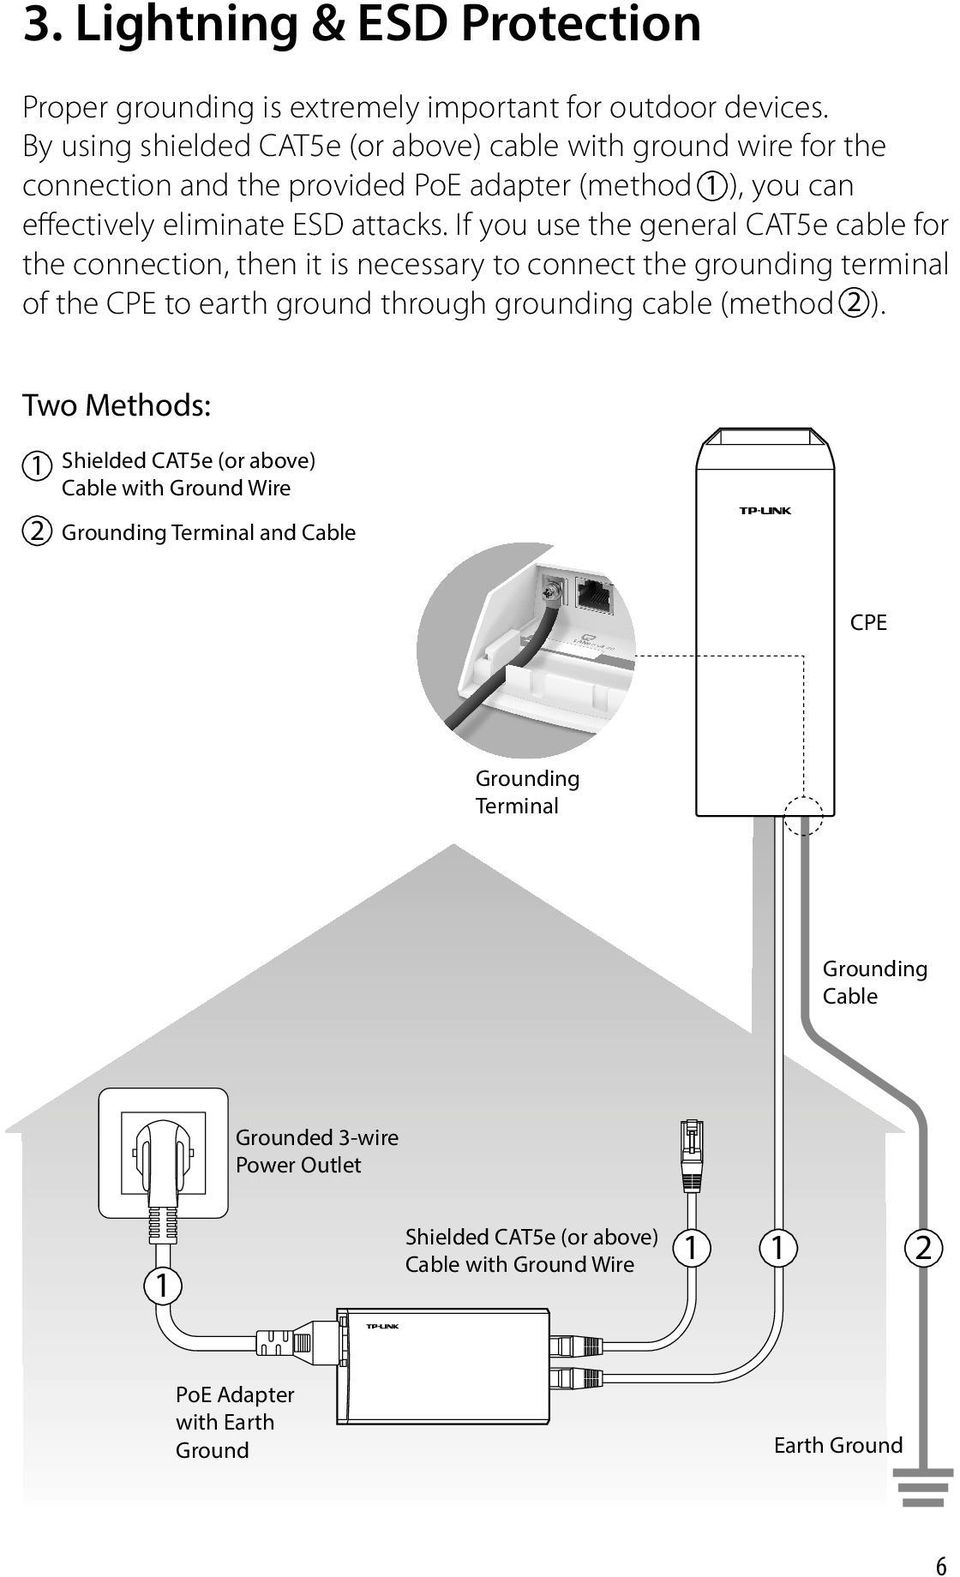 If you use the general CAT5e cable for the connection, then it is necessary to connect the grounding terminal of the CPE to earth ground through grounding cable (method 2 ).